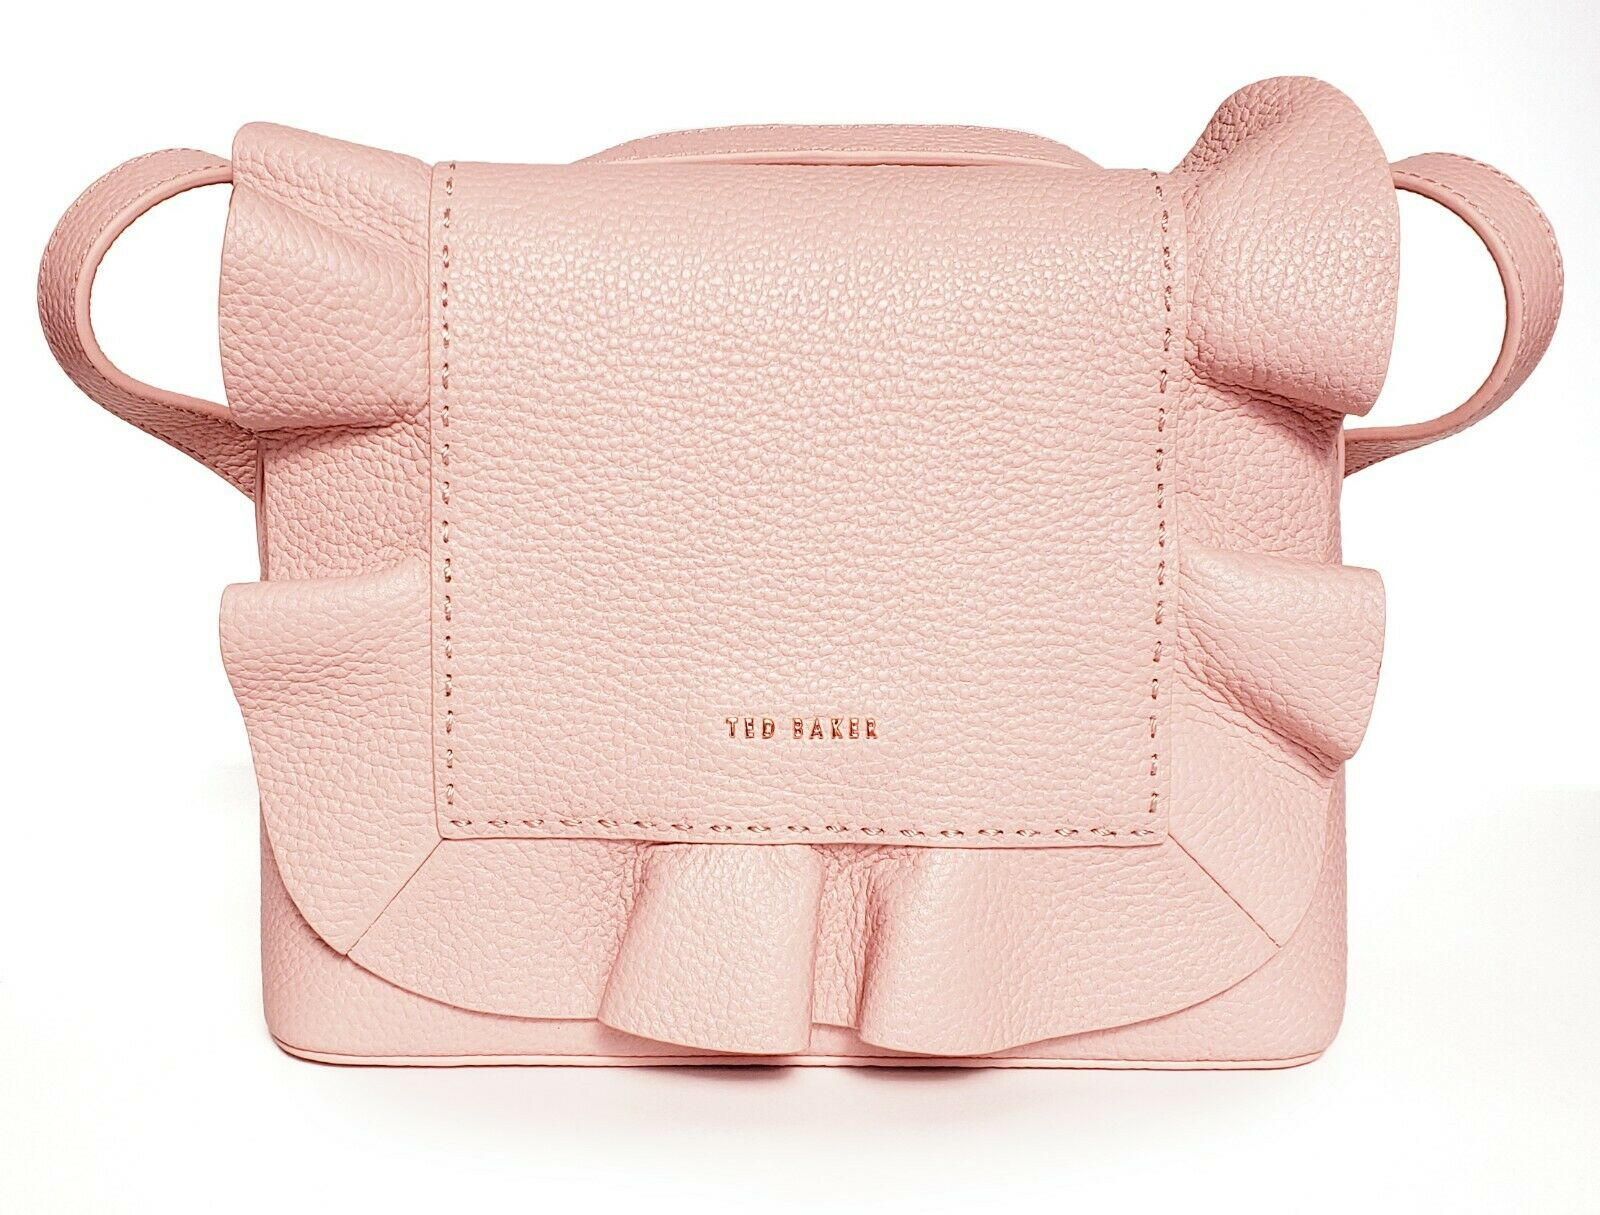 03017753f Ted Baker Rammira Leather Ruffle Convertible Lady Backpack Rugsack ...